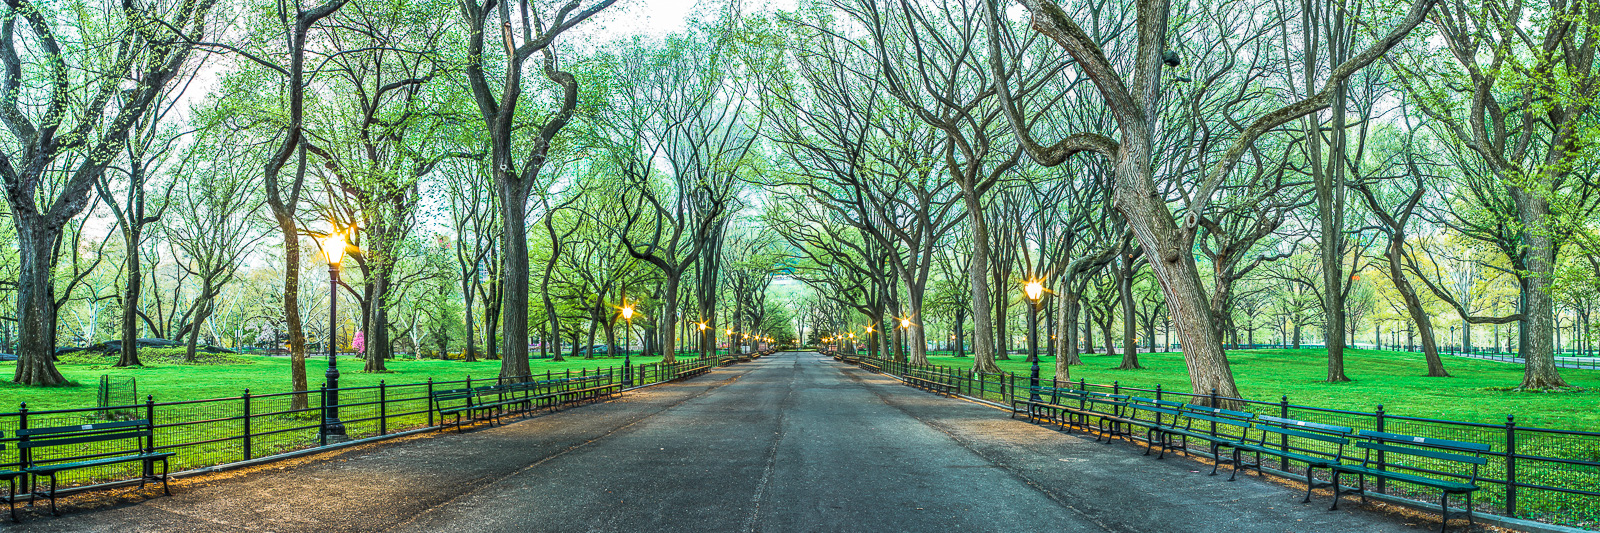 Spring,Central Park,Cityscape,Elm,Green,Horizontal,New York City,Spring,Trees,panoramic, photo